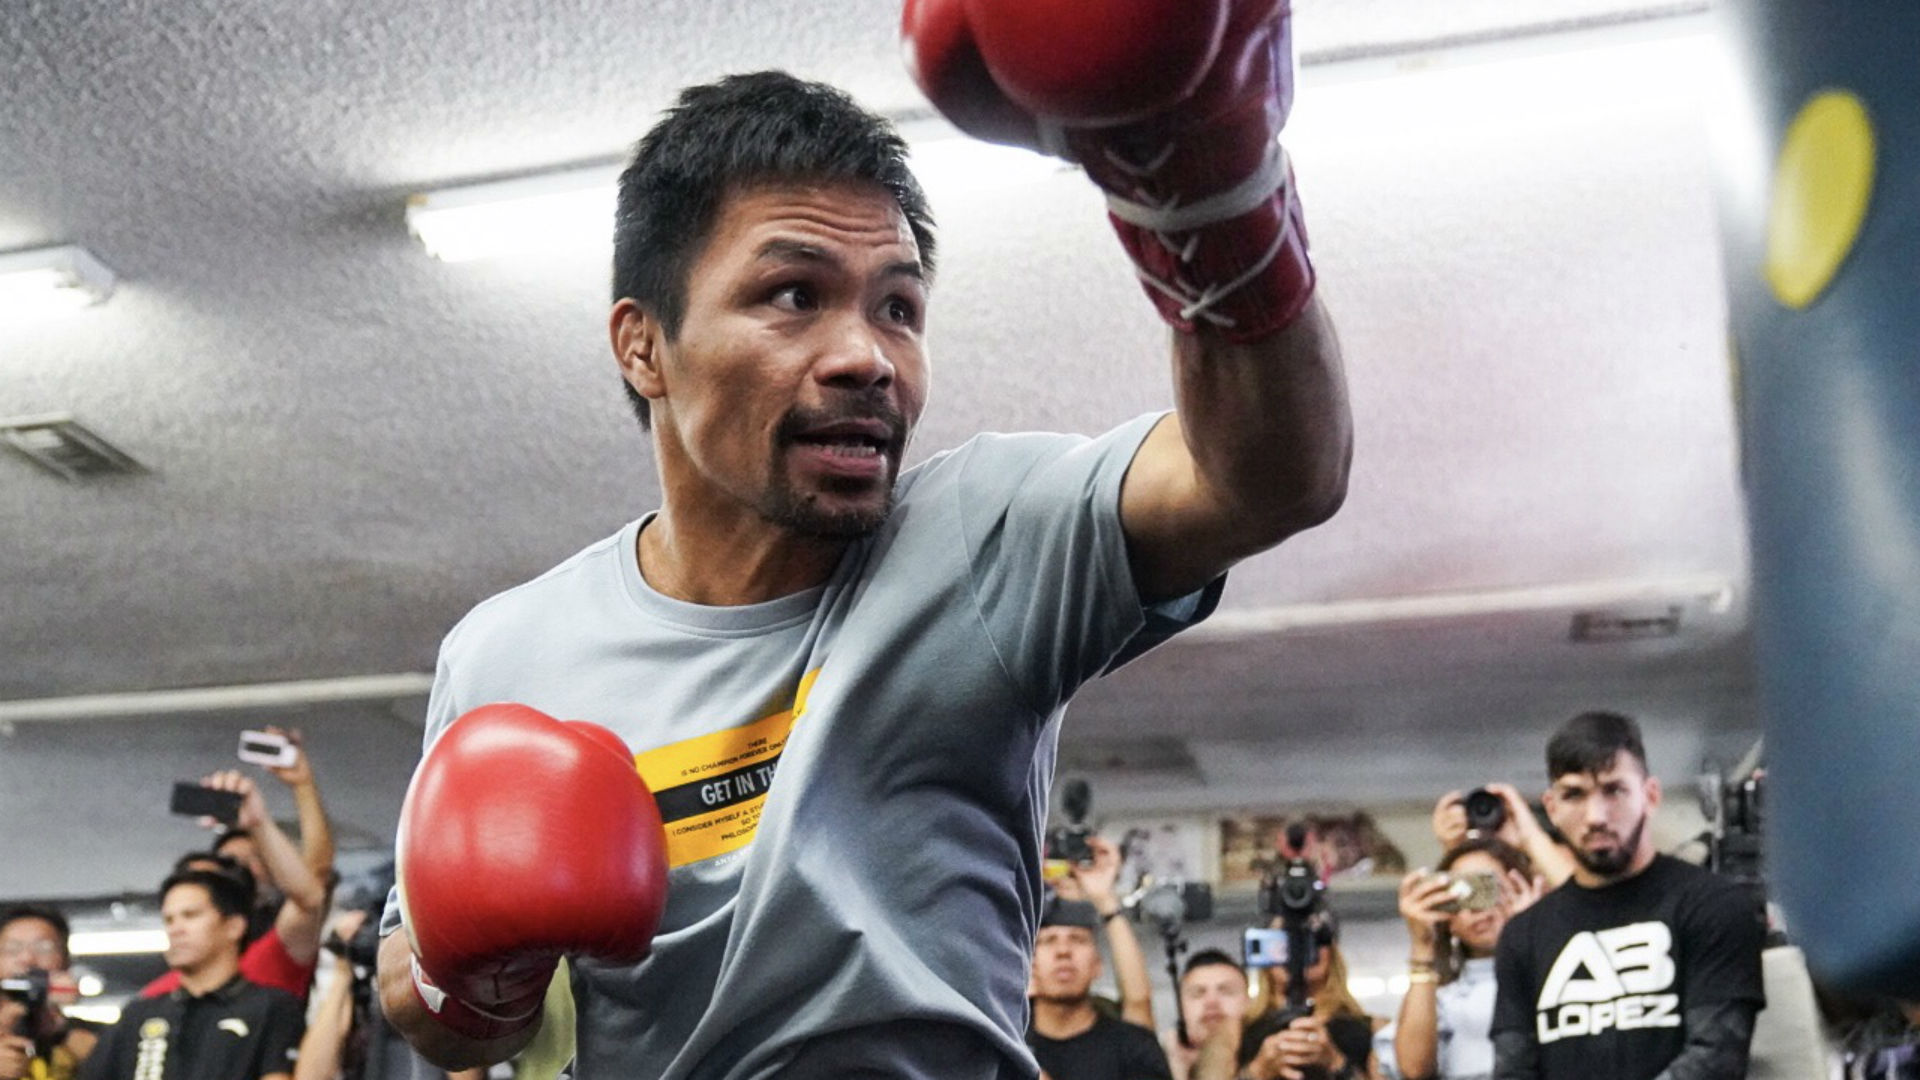 The inexplicable resurrection of Manny Pacquiao's boxing career